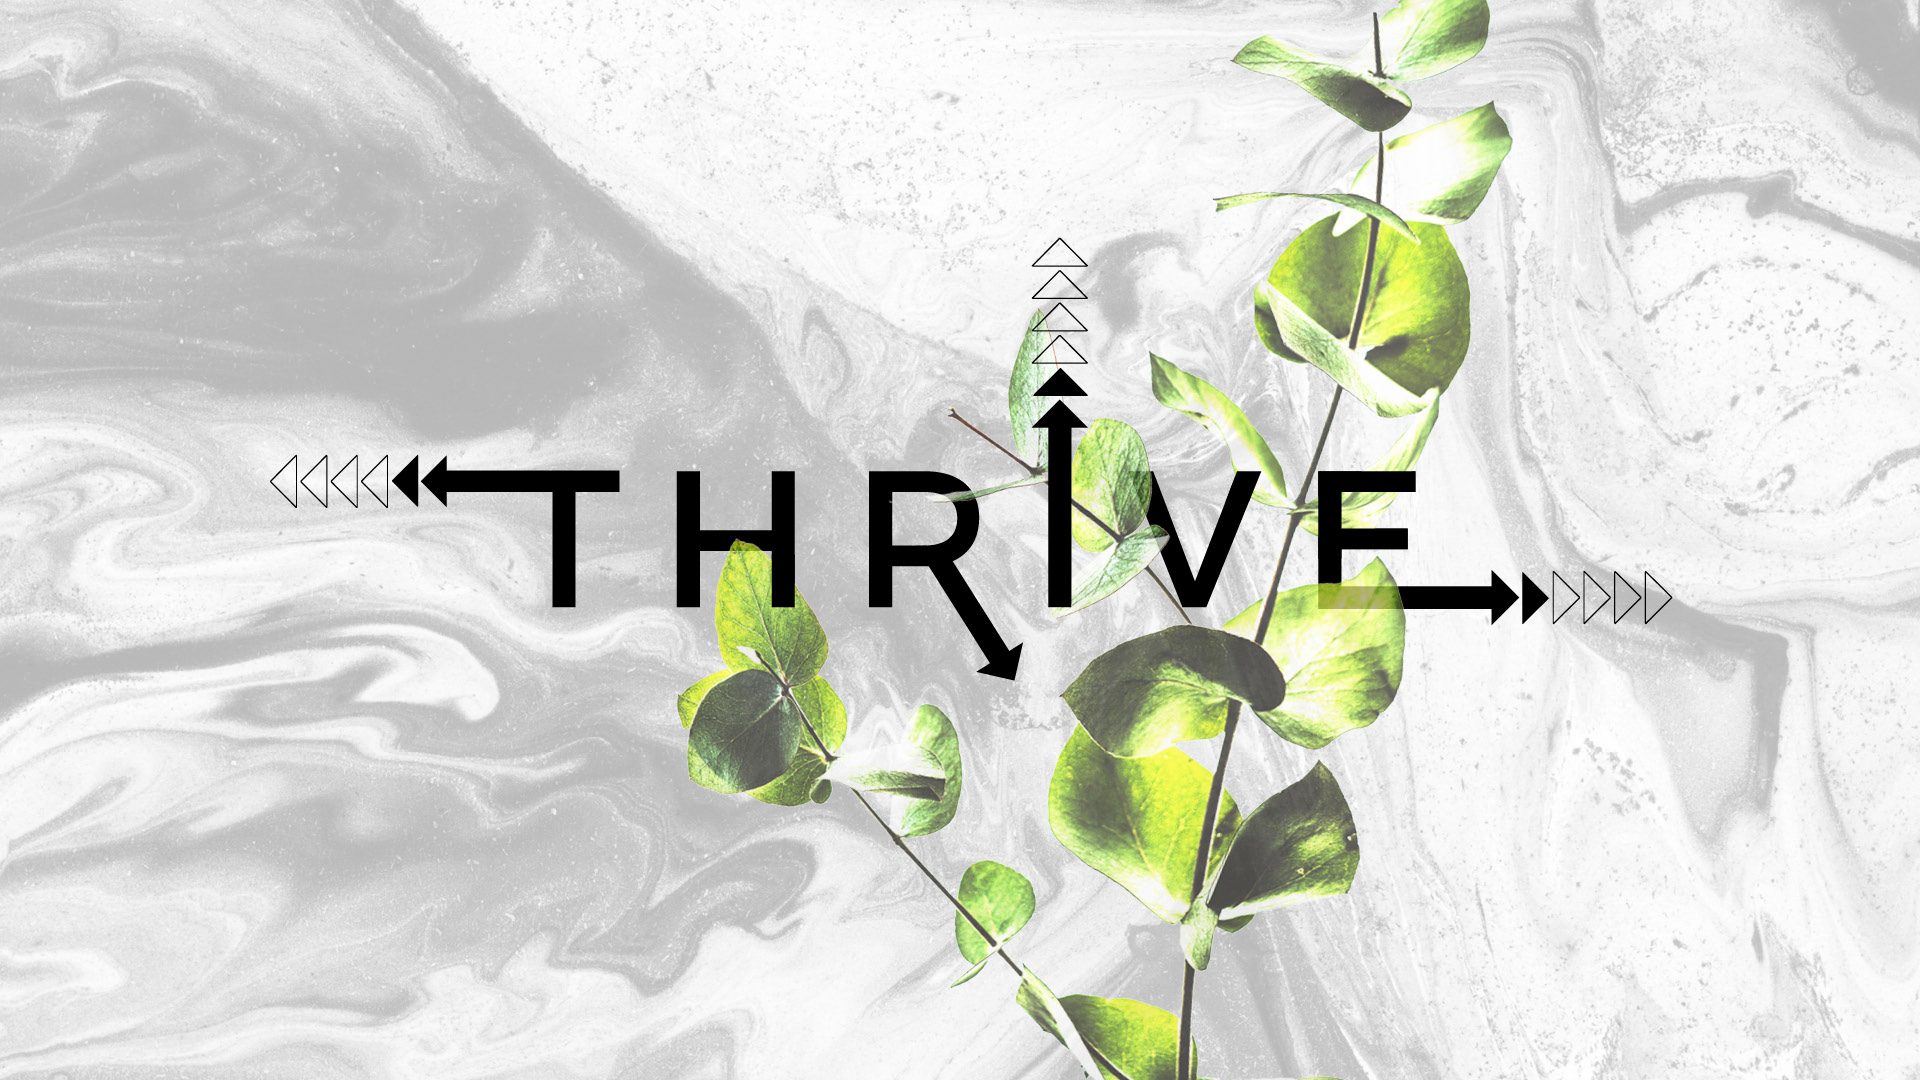 Thrive - Deepening our lives in authentic Community